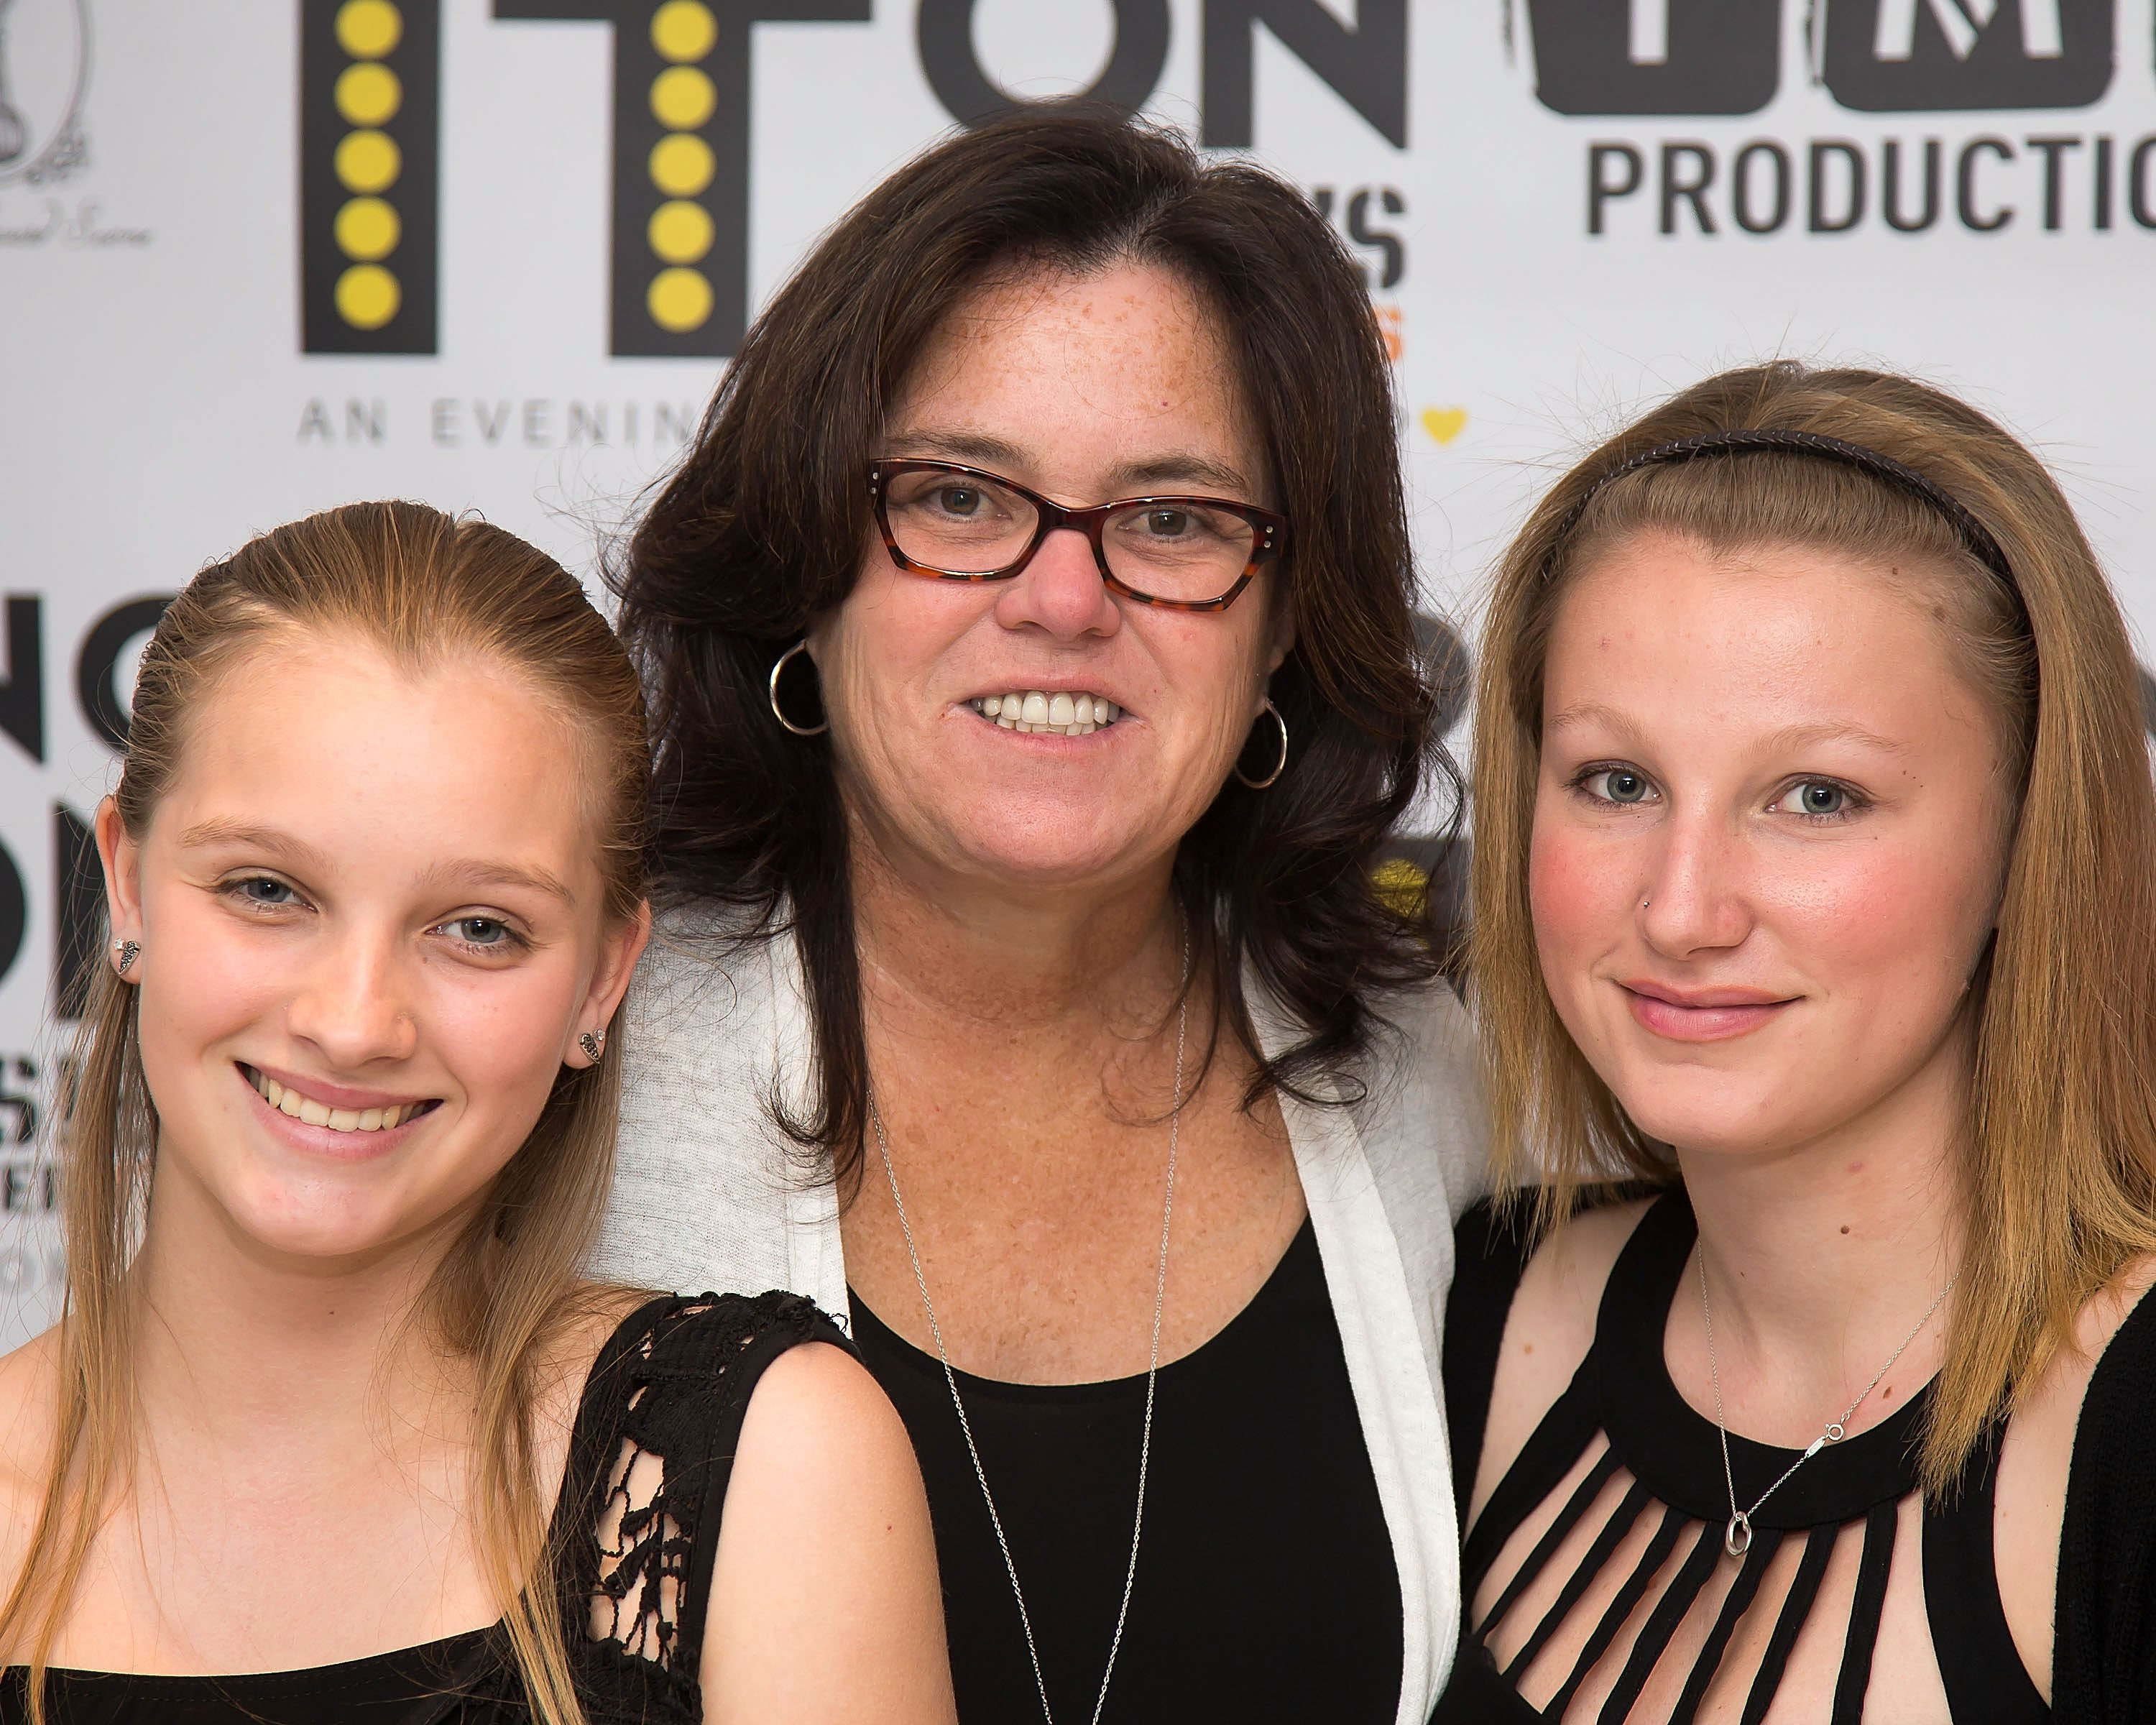 Rosie O'Donnell and her daughter Chelsea Belle O'Donnell. Image credit: Getty/GlobalImagesUkraine